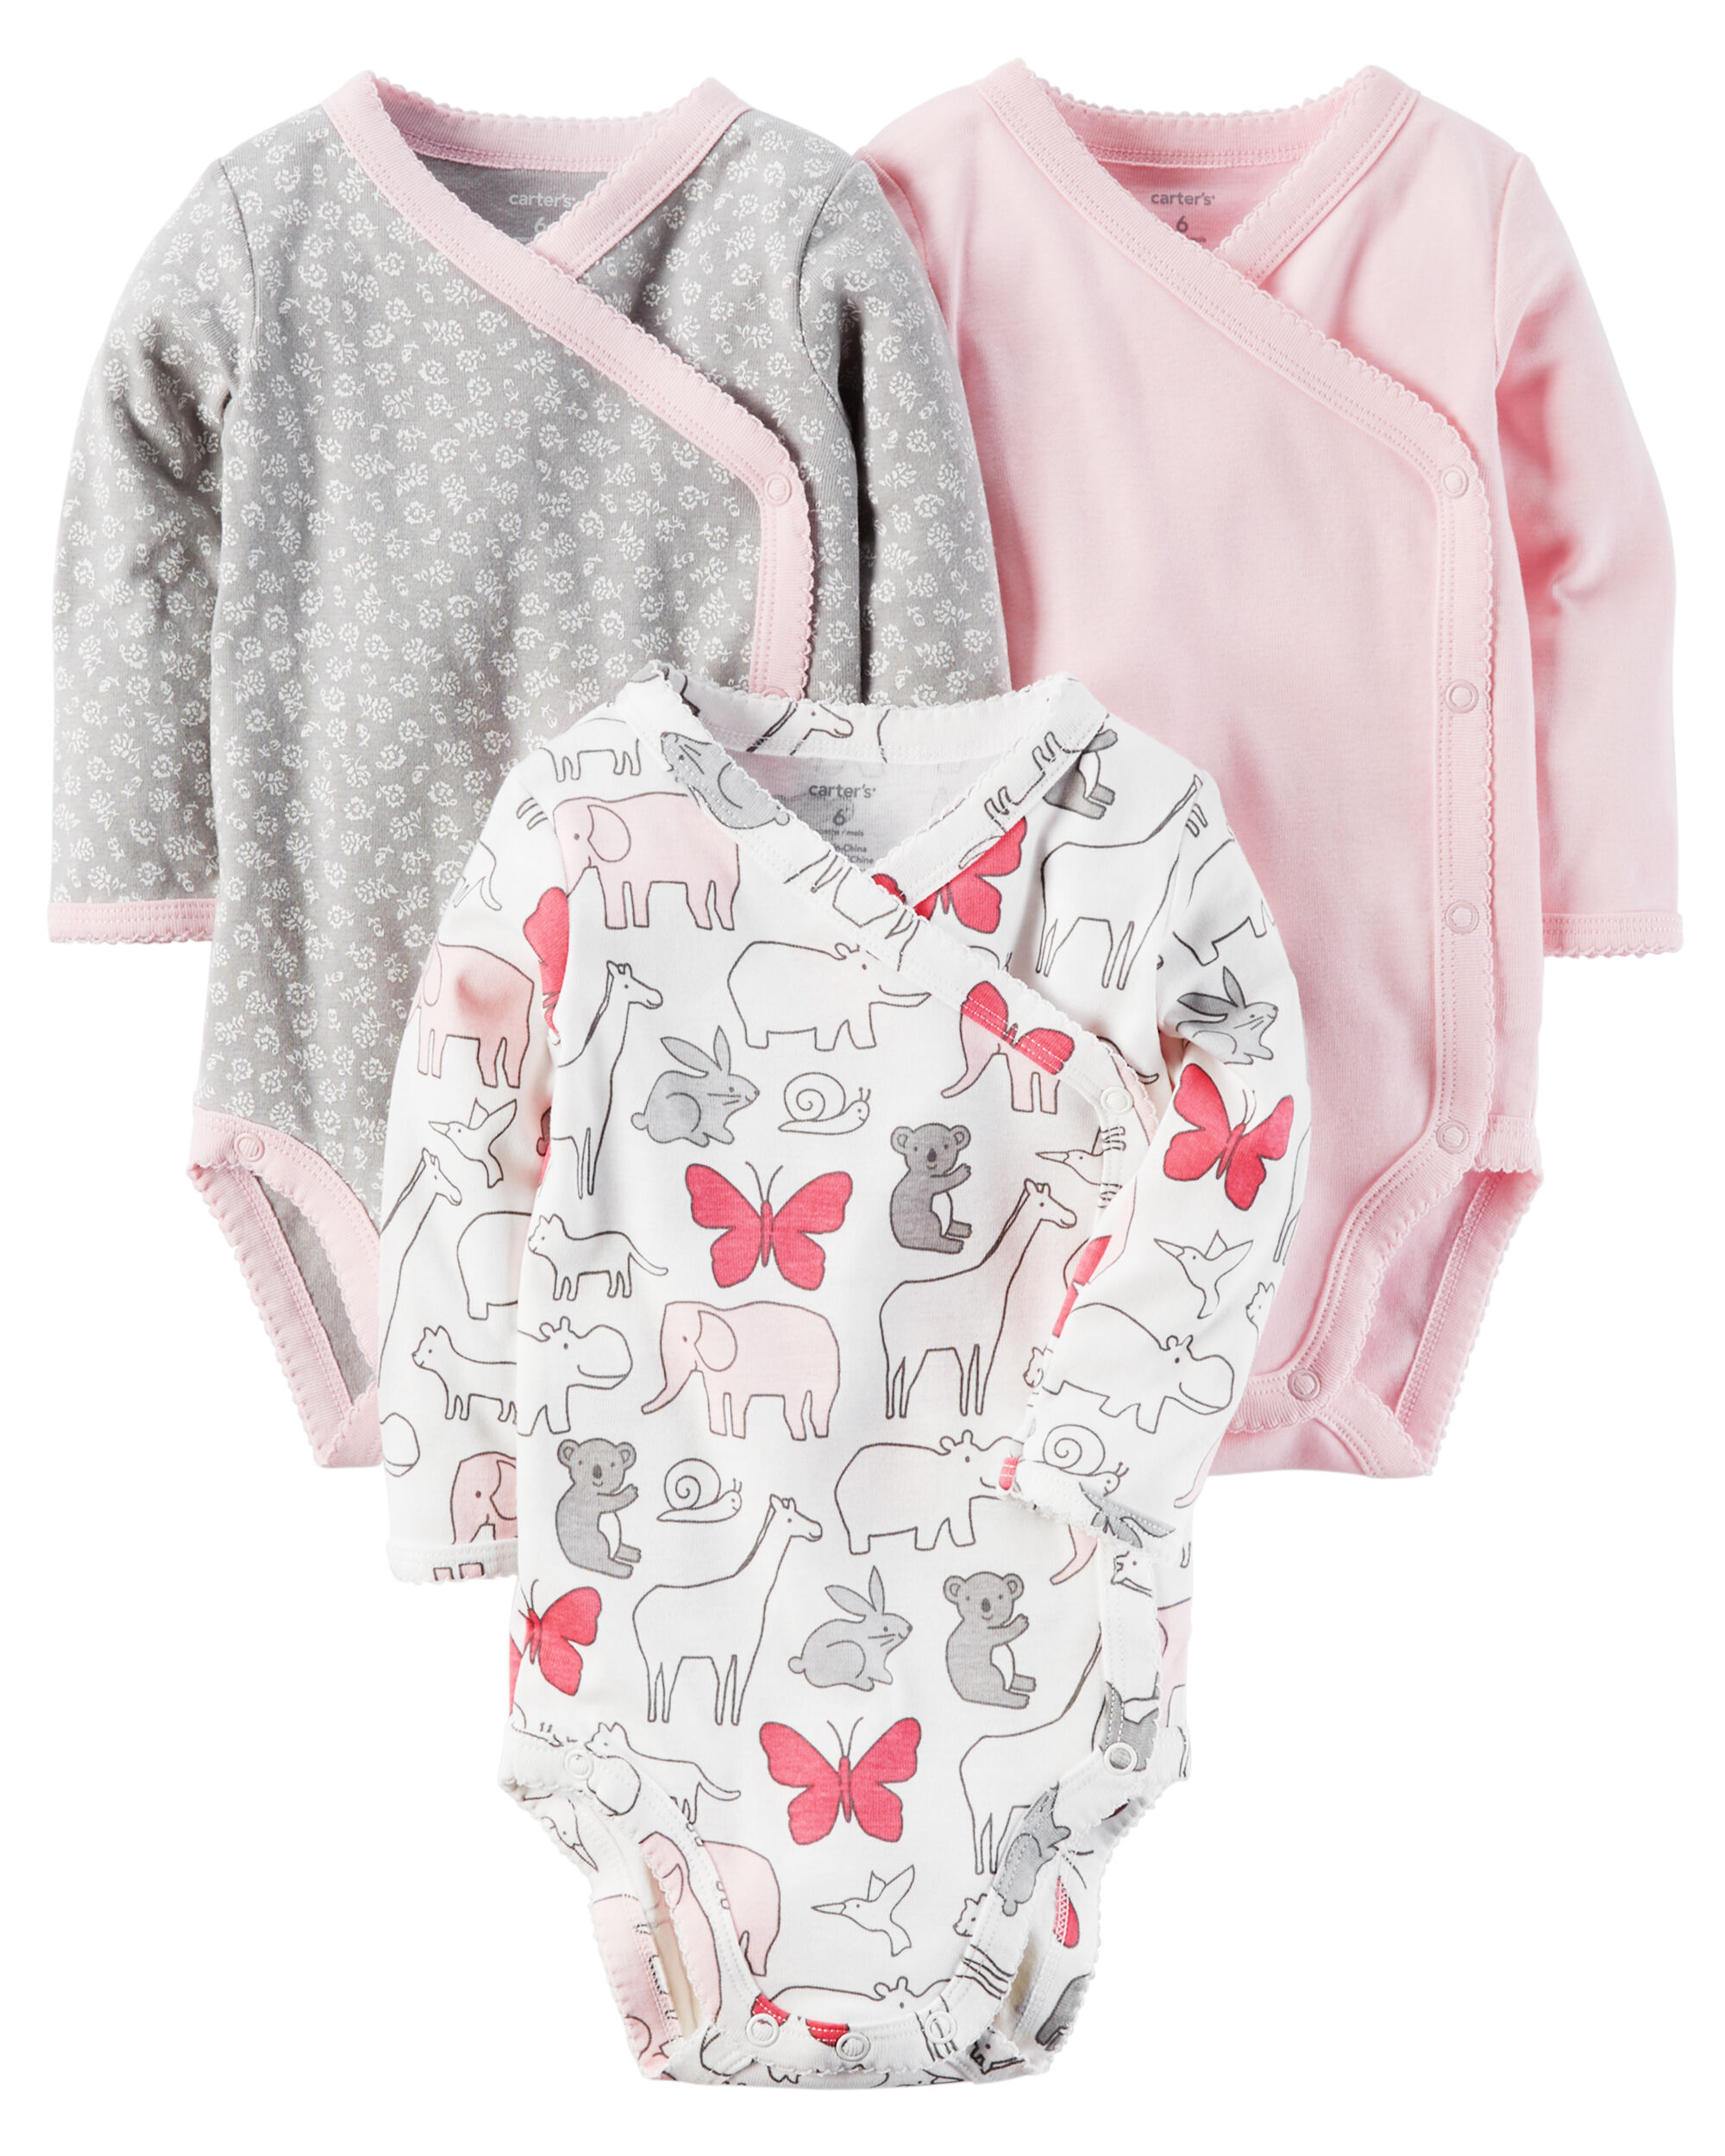 Shop for baby girl school uniforms from Oshkosh, and find many cute baby girl uniforms: tops, shorts, shoes and more in sizes 6M and up. Shop for baby girl school uniforms from Oshkosh, and find many cute baby girl uniforms: tops, shorts, shoes and more in sizes 6M and up.